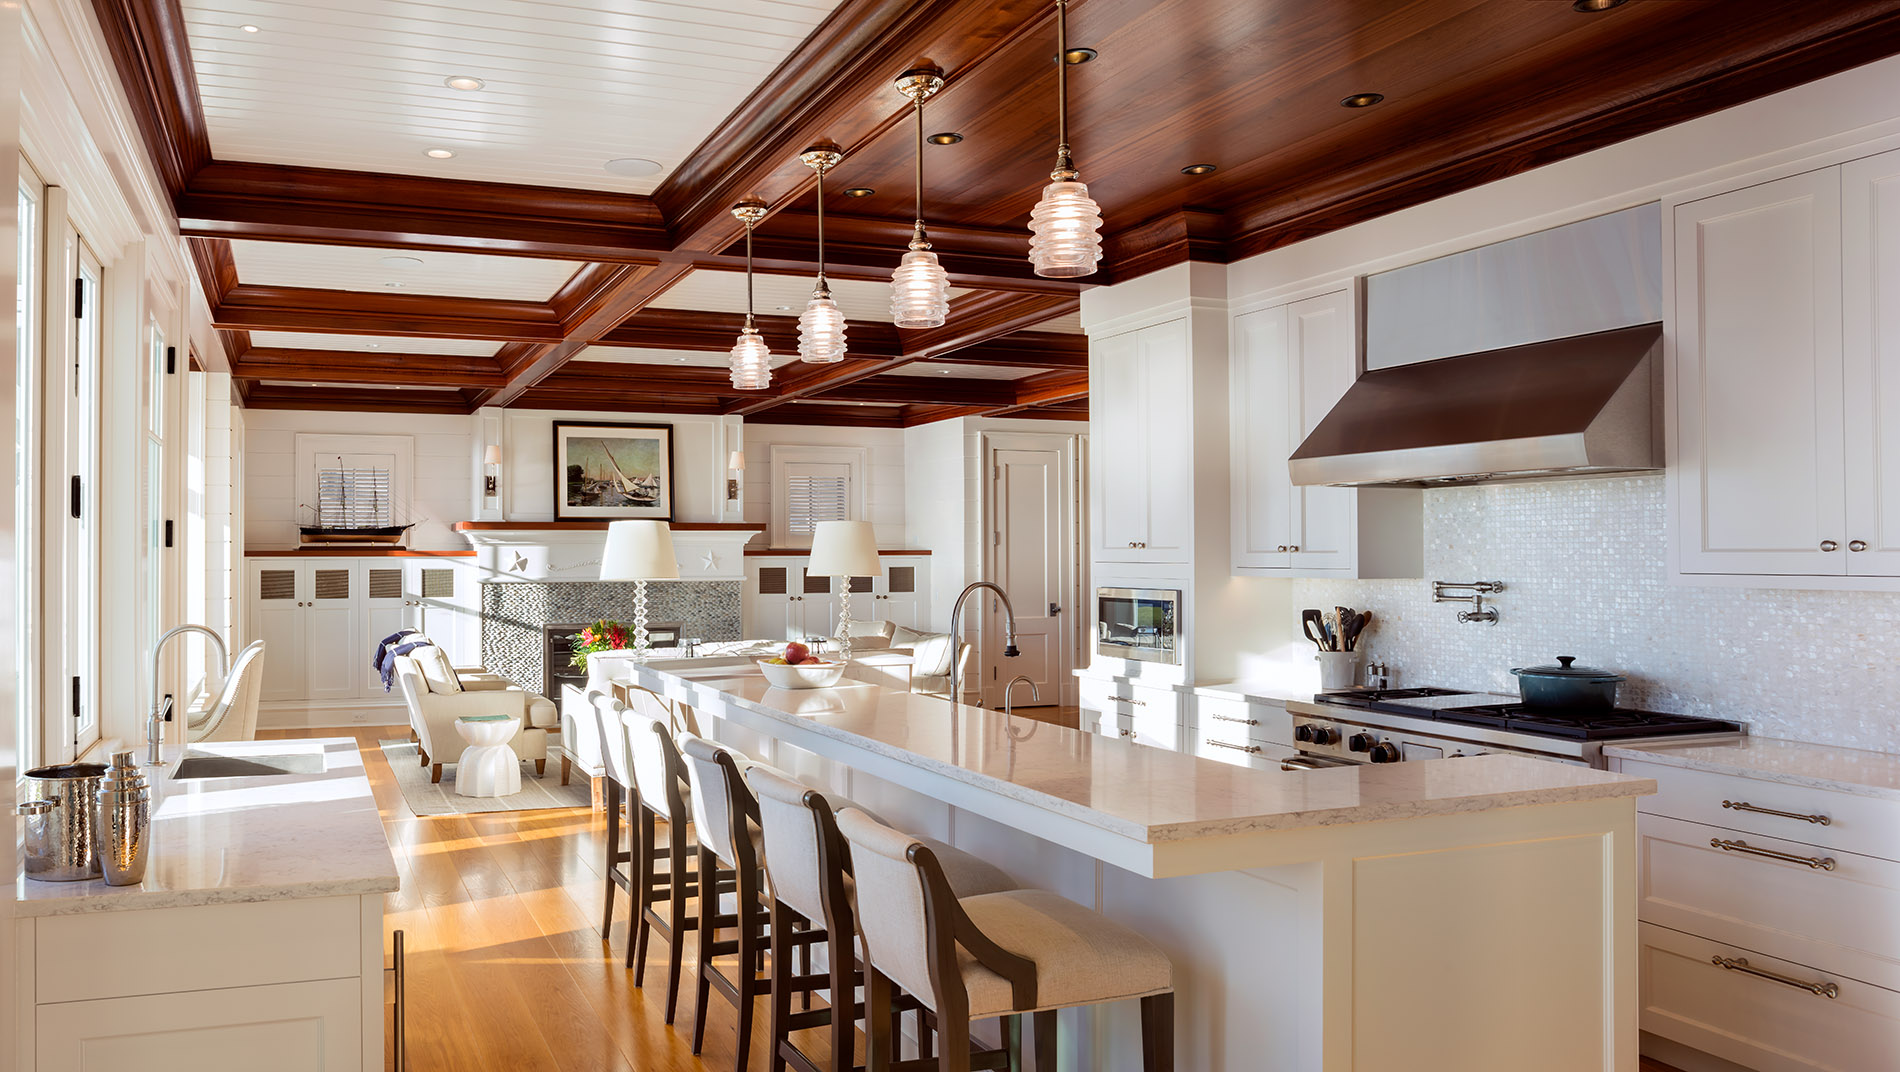 New kitchen design with mahogany coffers, beadboard paneling, breakfast island with sink, stainless steel appliances, oak flooring, wine bar, high top chairs, river rock fireplace, white walls, brass hardware, bee hive pendant light fixture.